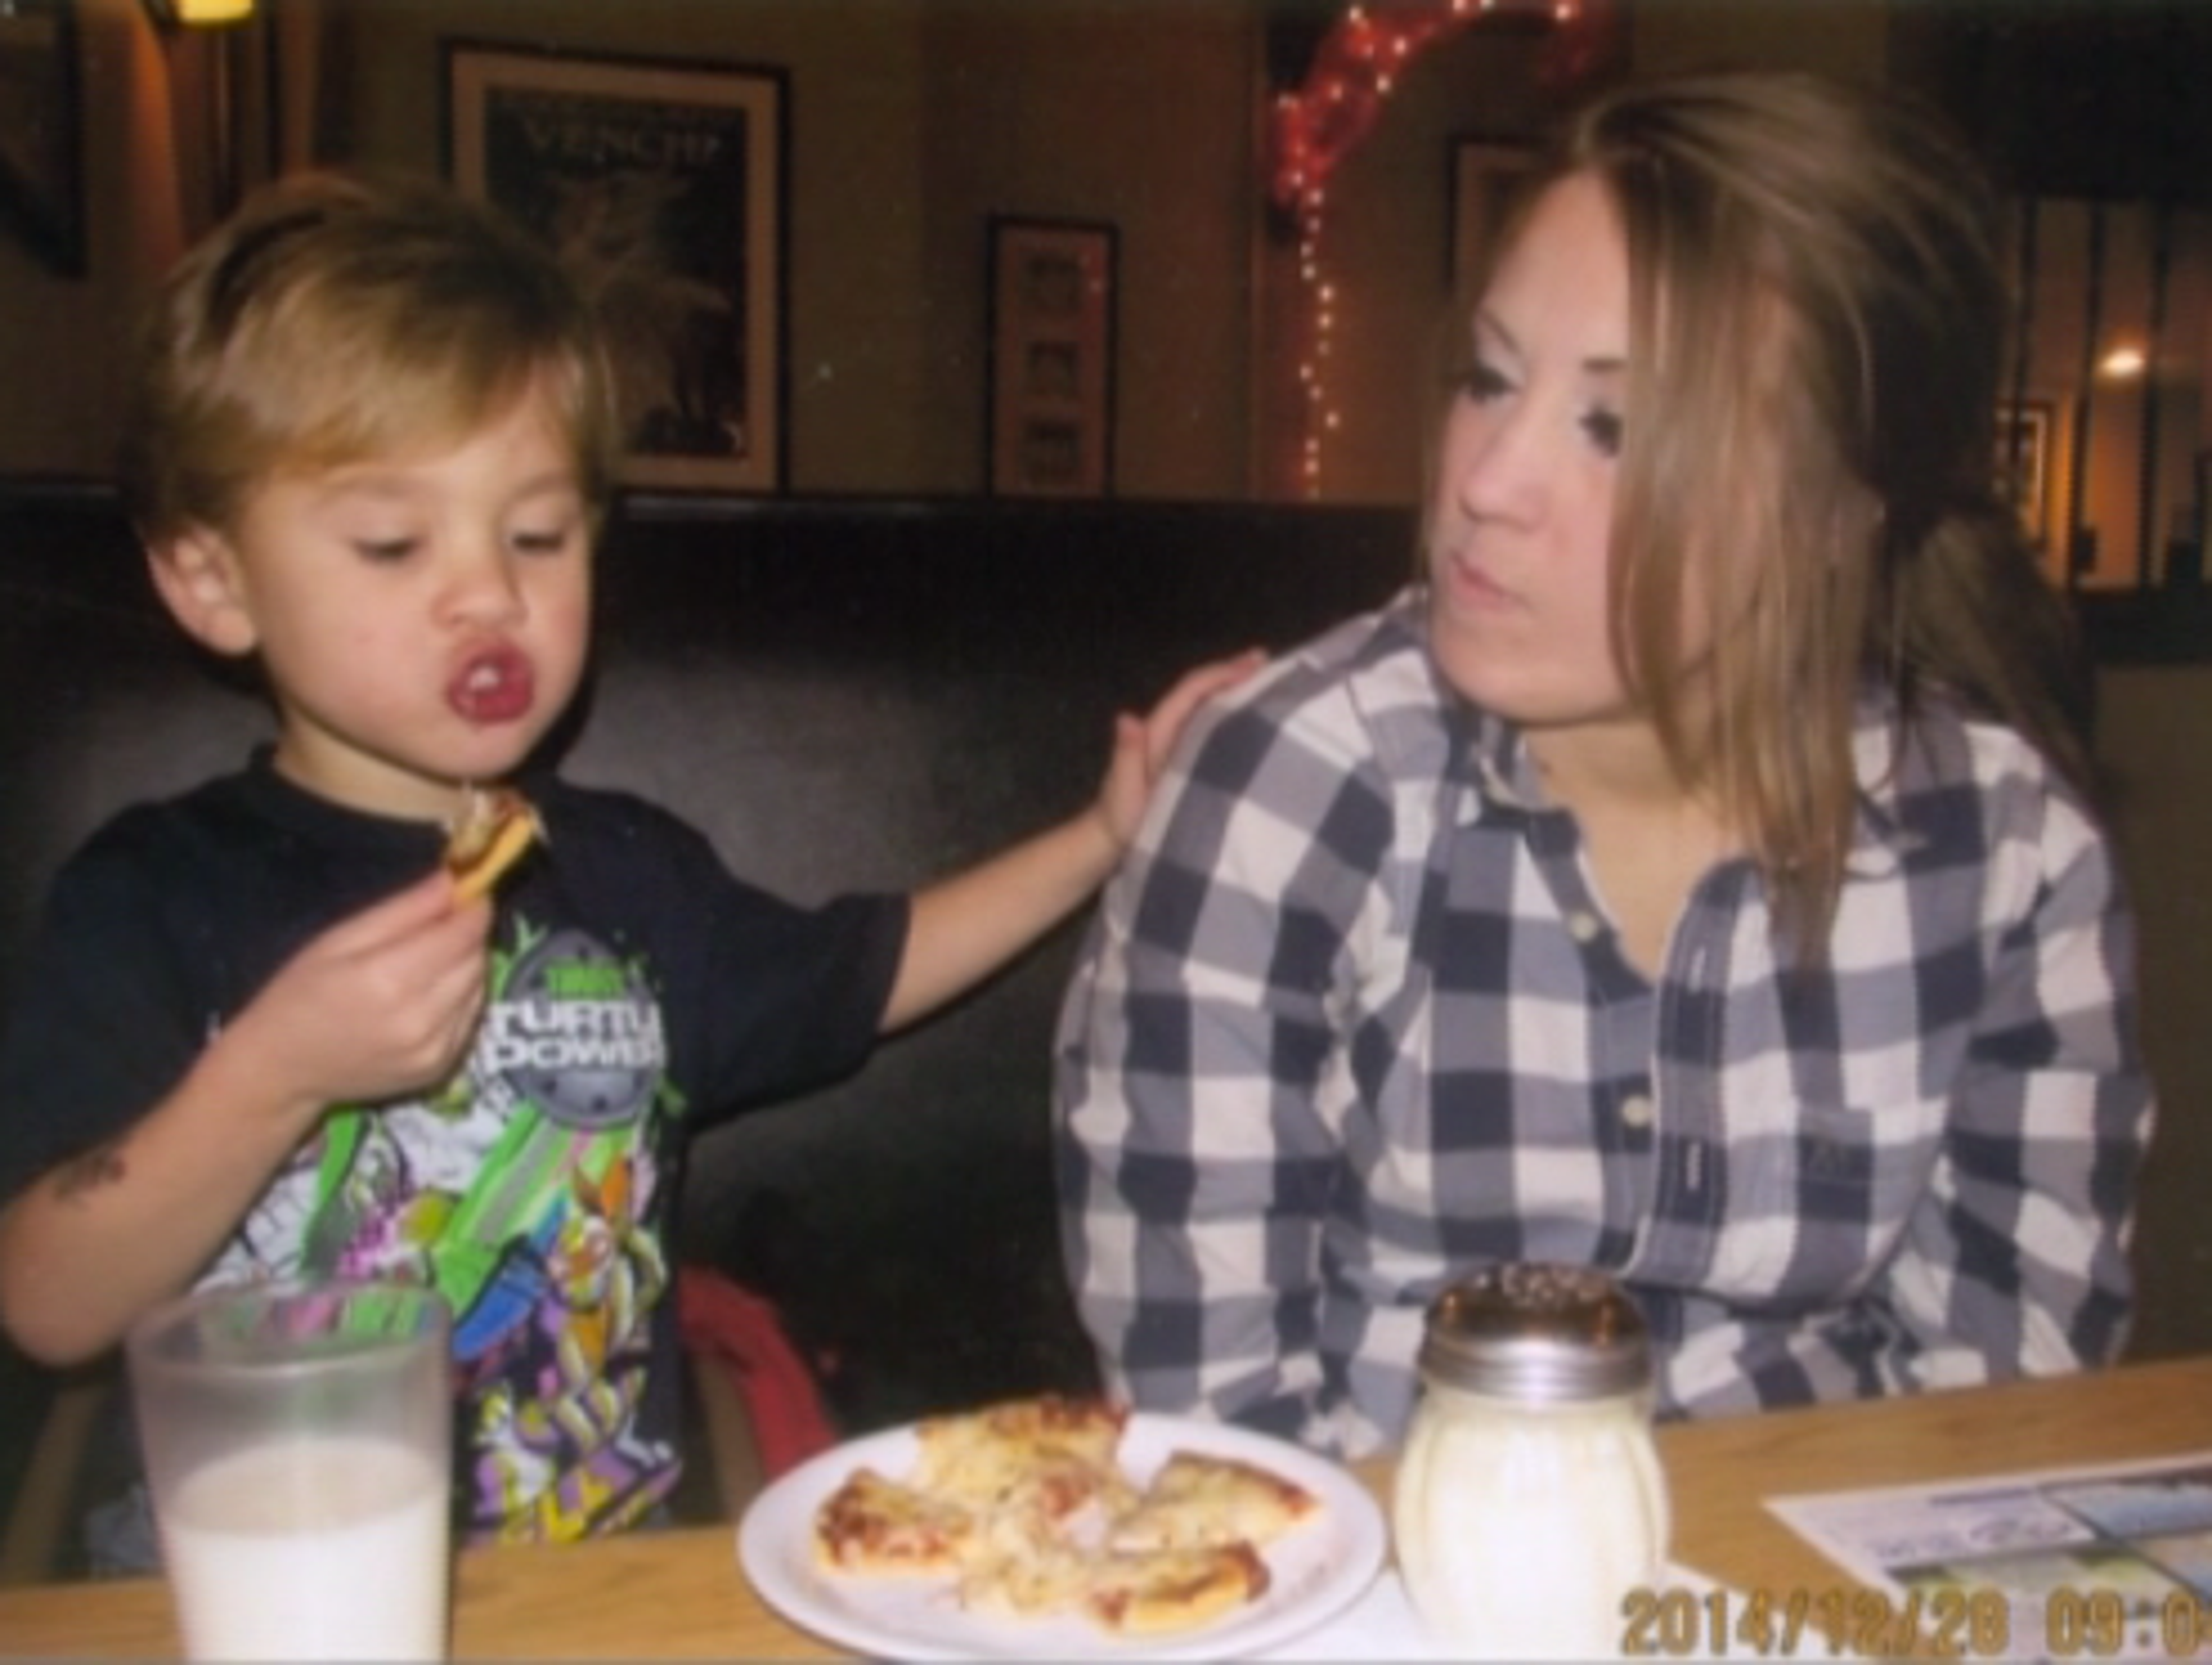 Nathaniel and Gabrielle eating pizza.